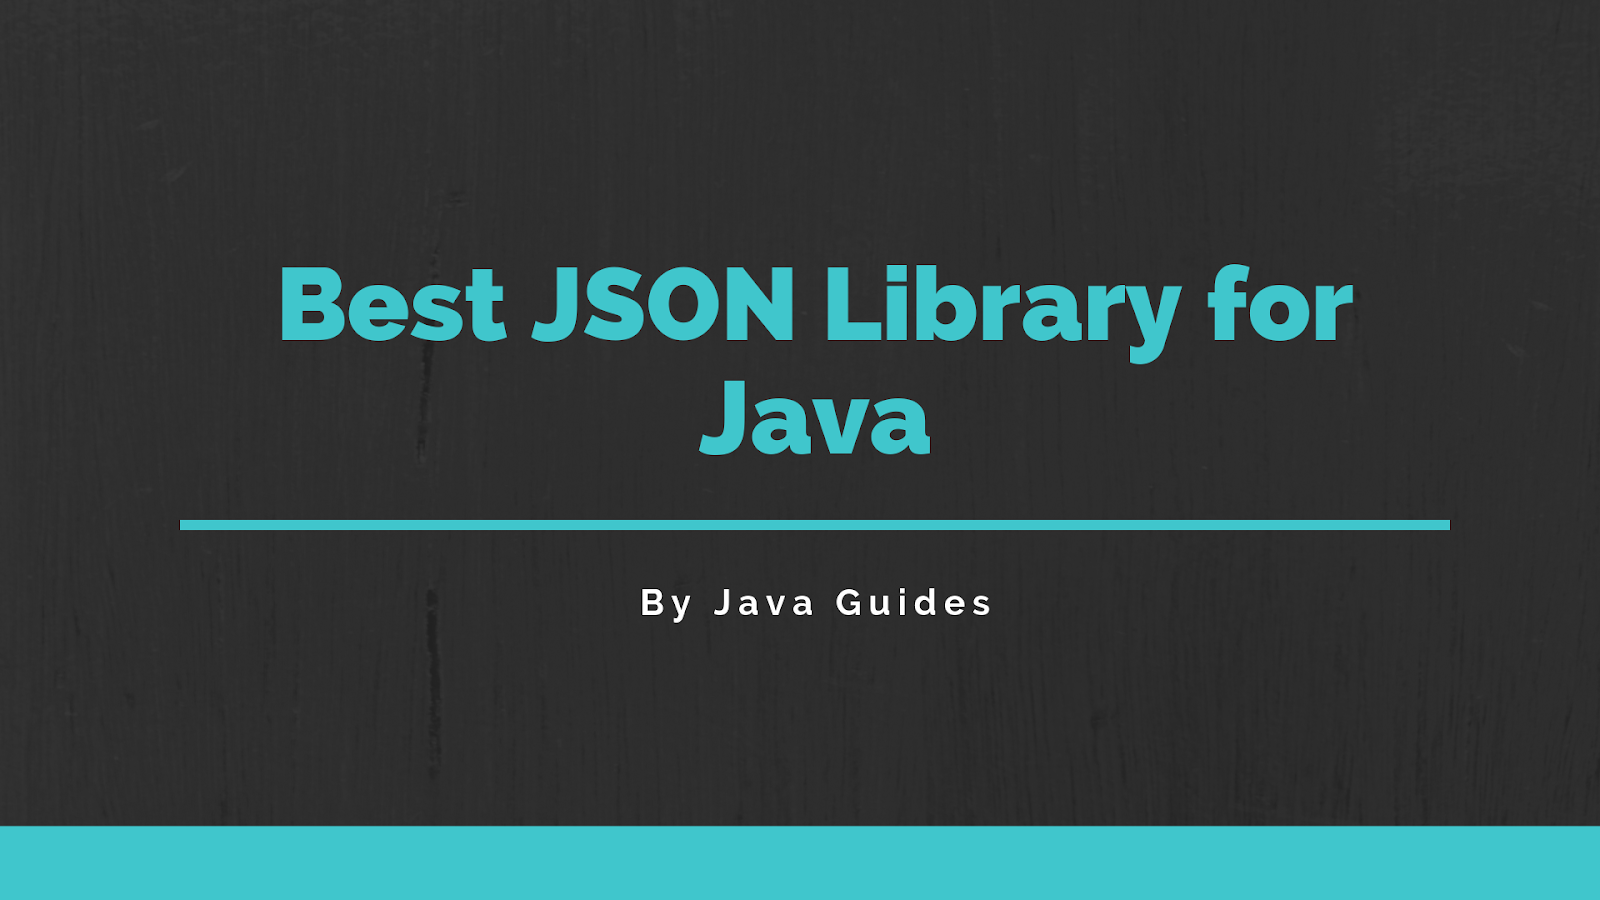 Best JSON Library for Java